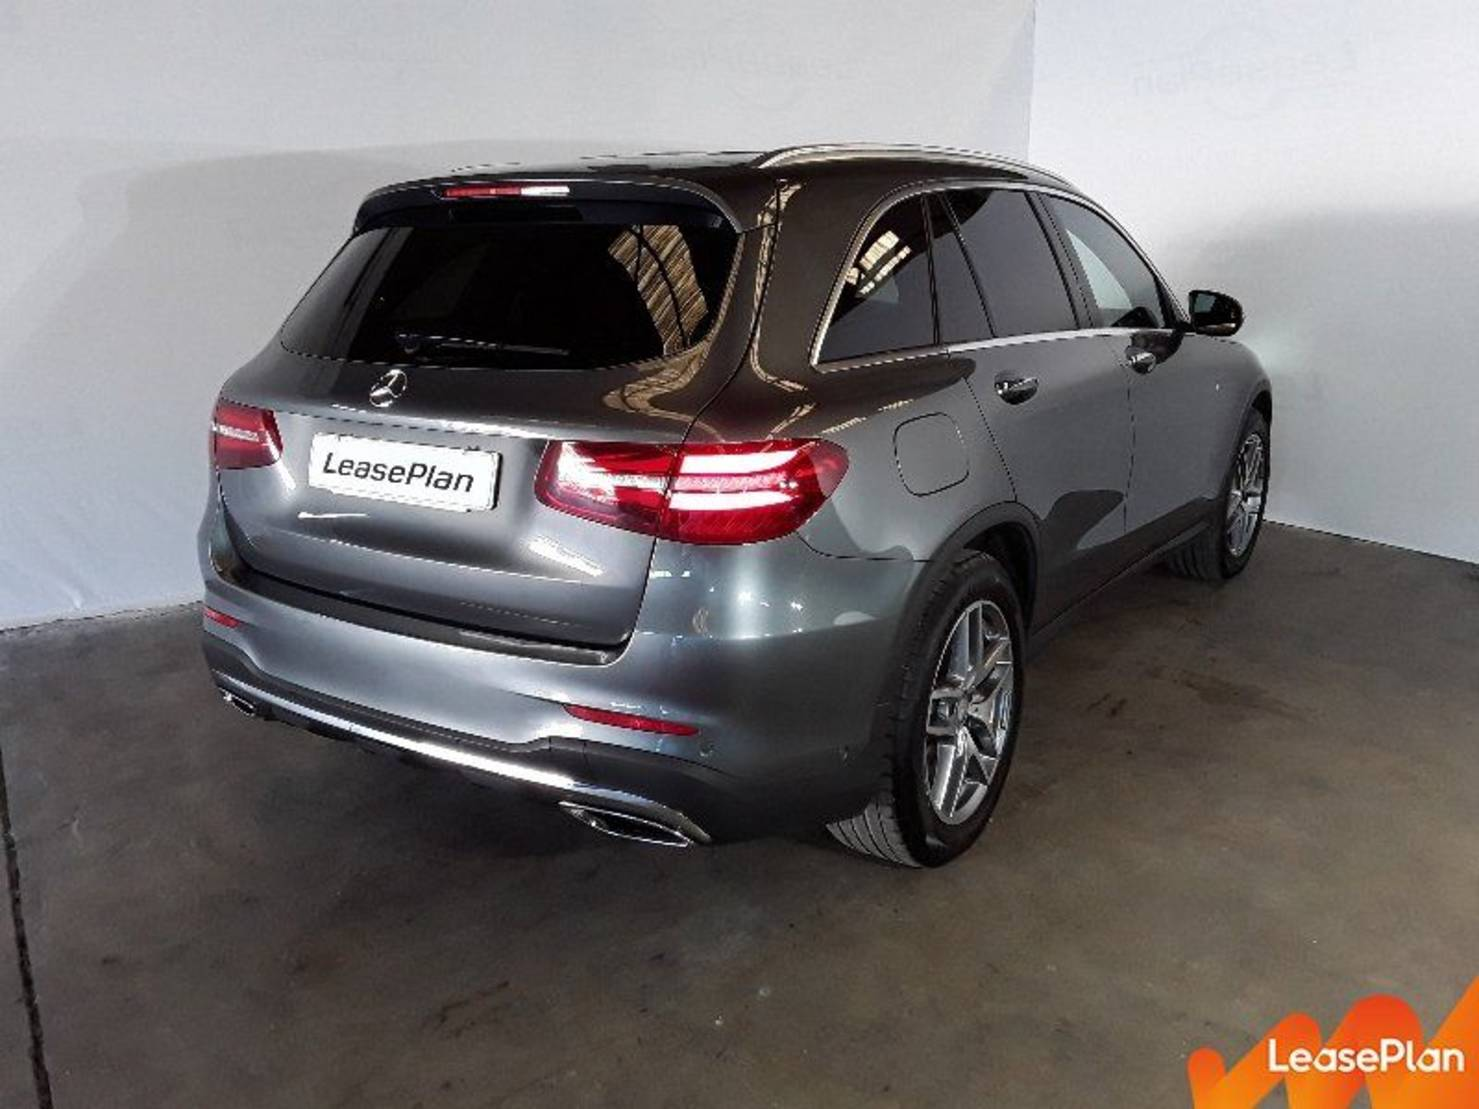 Mercedes-Benz GLC-Klasse 250 d 9G-Tronic 4Matic, Fascination detail2